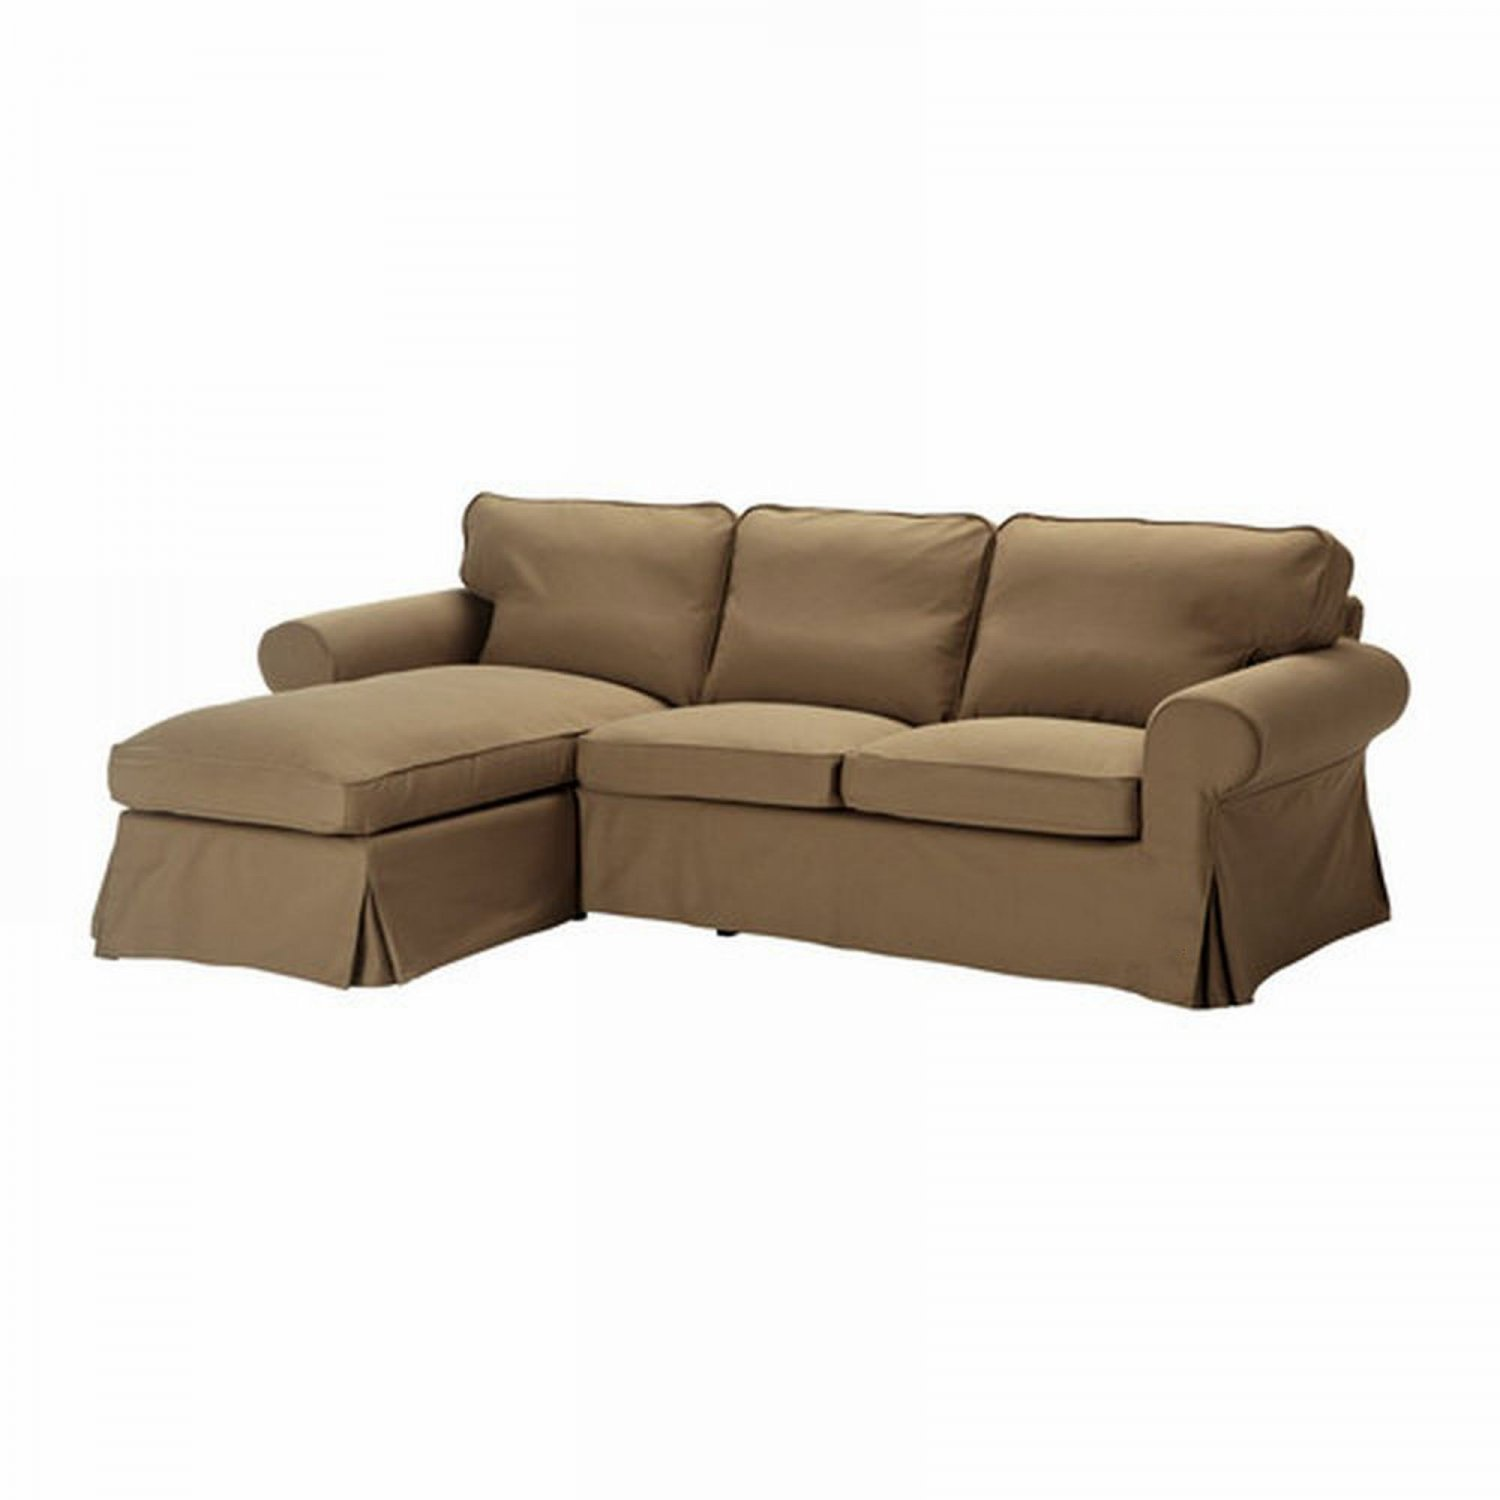 Sofa Set Price Rate Ikea Ektorp Loveseat Sofa With Chaise Cover Slipcover